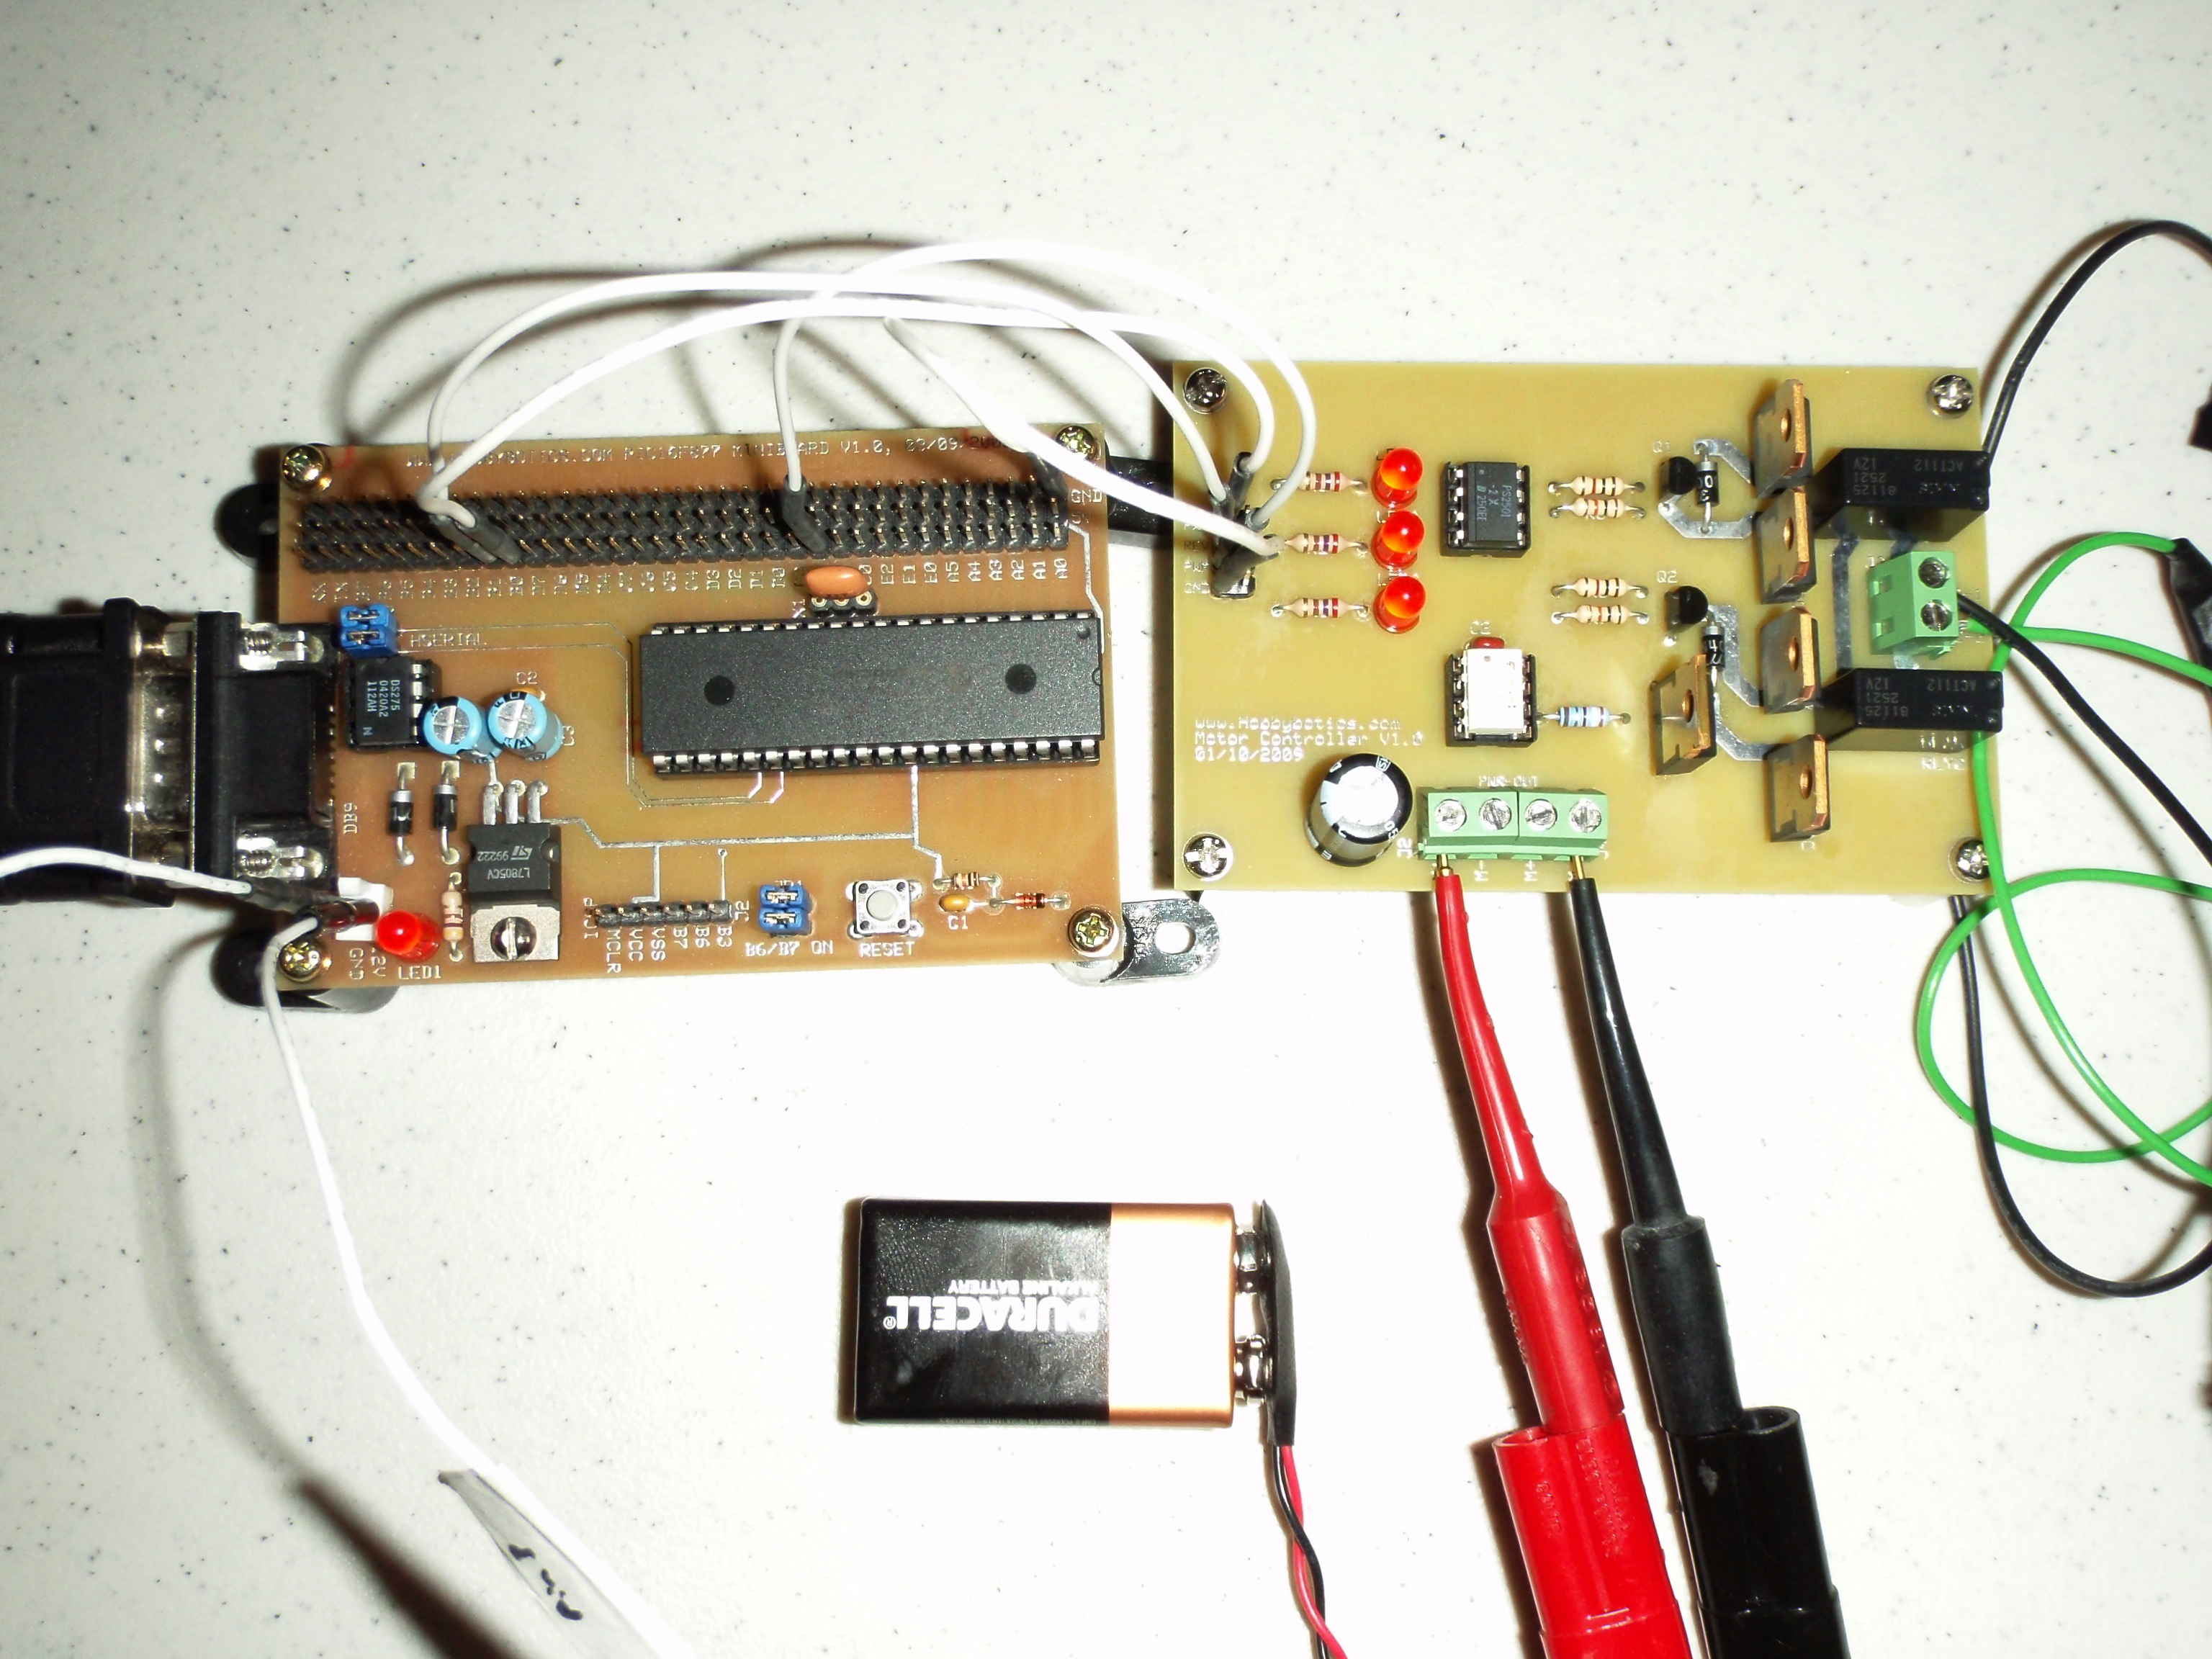 Hobbybotics Motor Controller V10 Control Circuits Besides Basic Electrical Wiring To Share The Same Power Source I